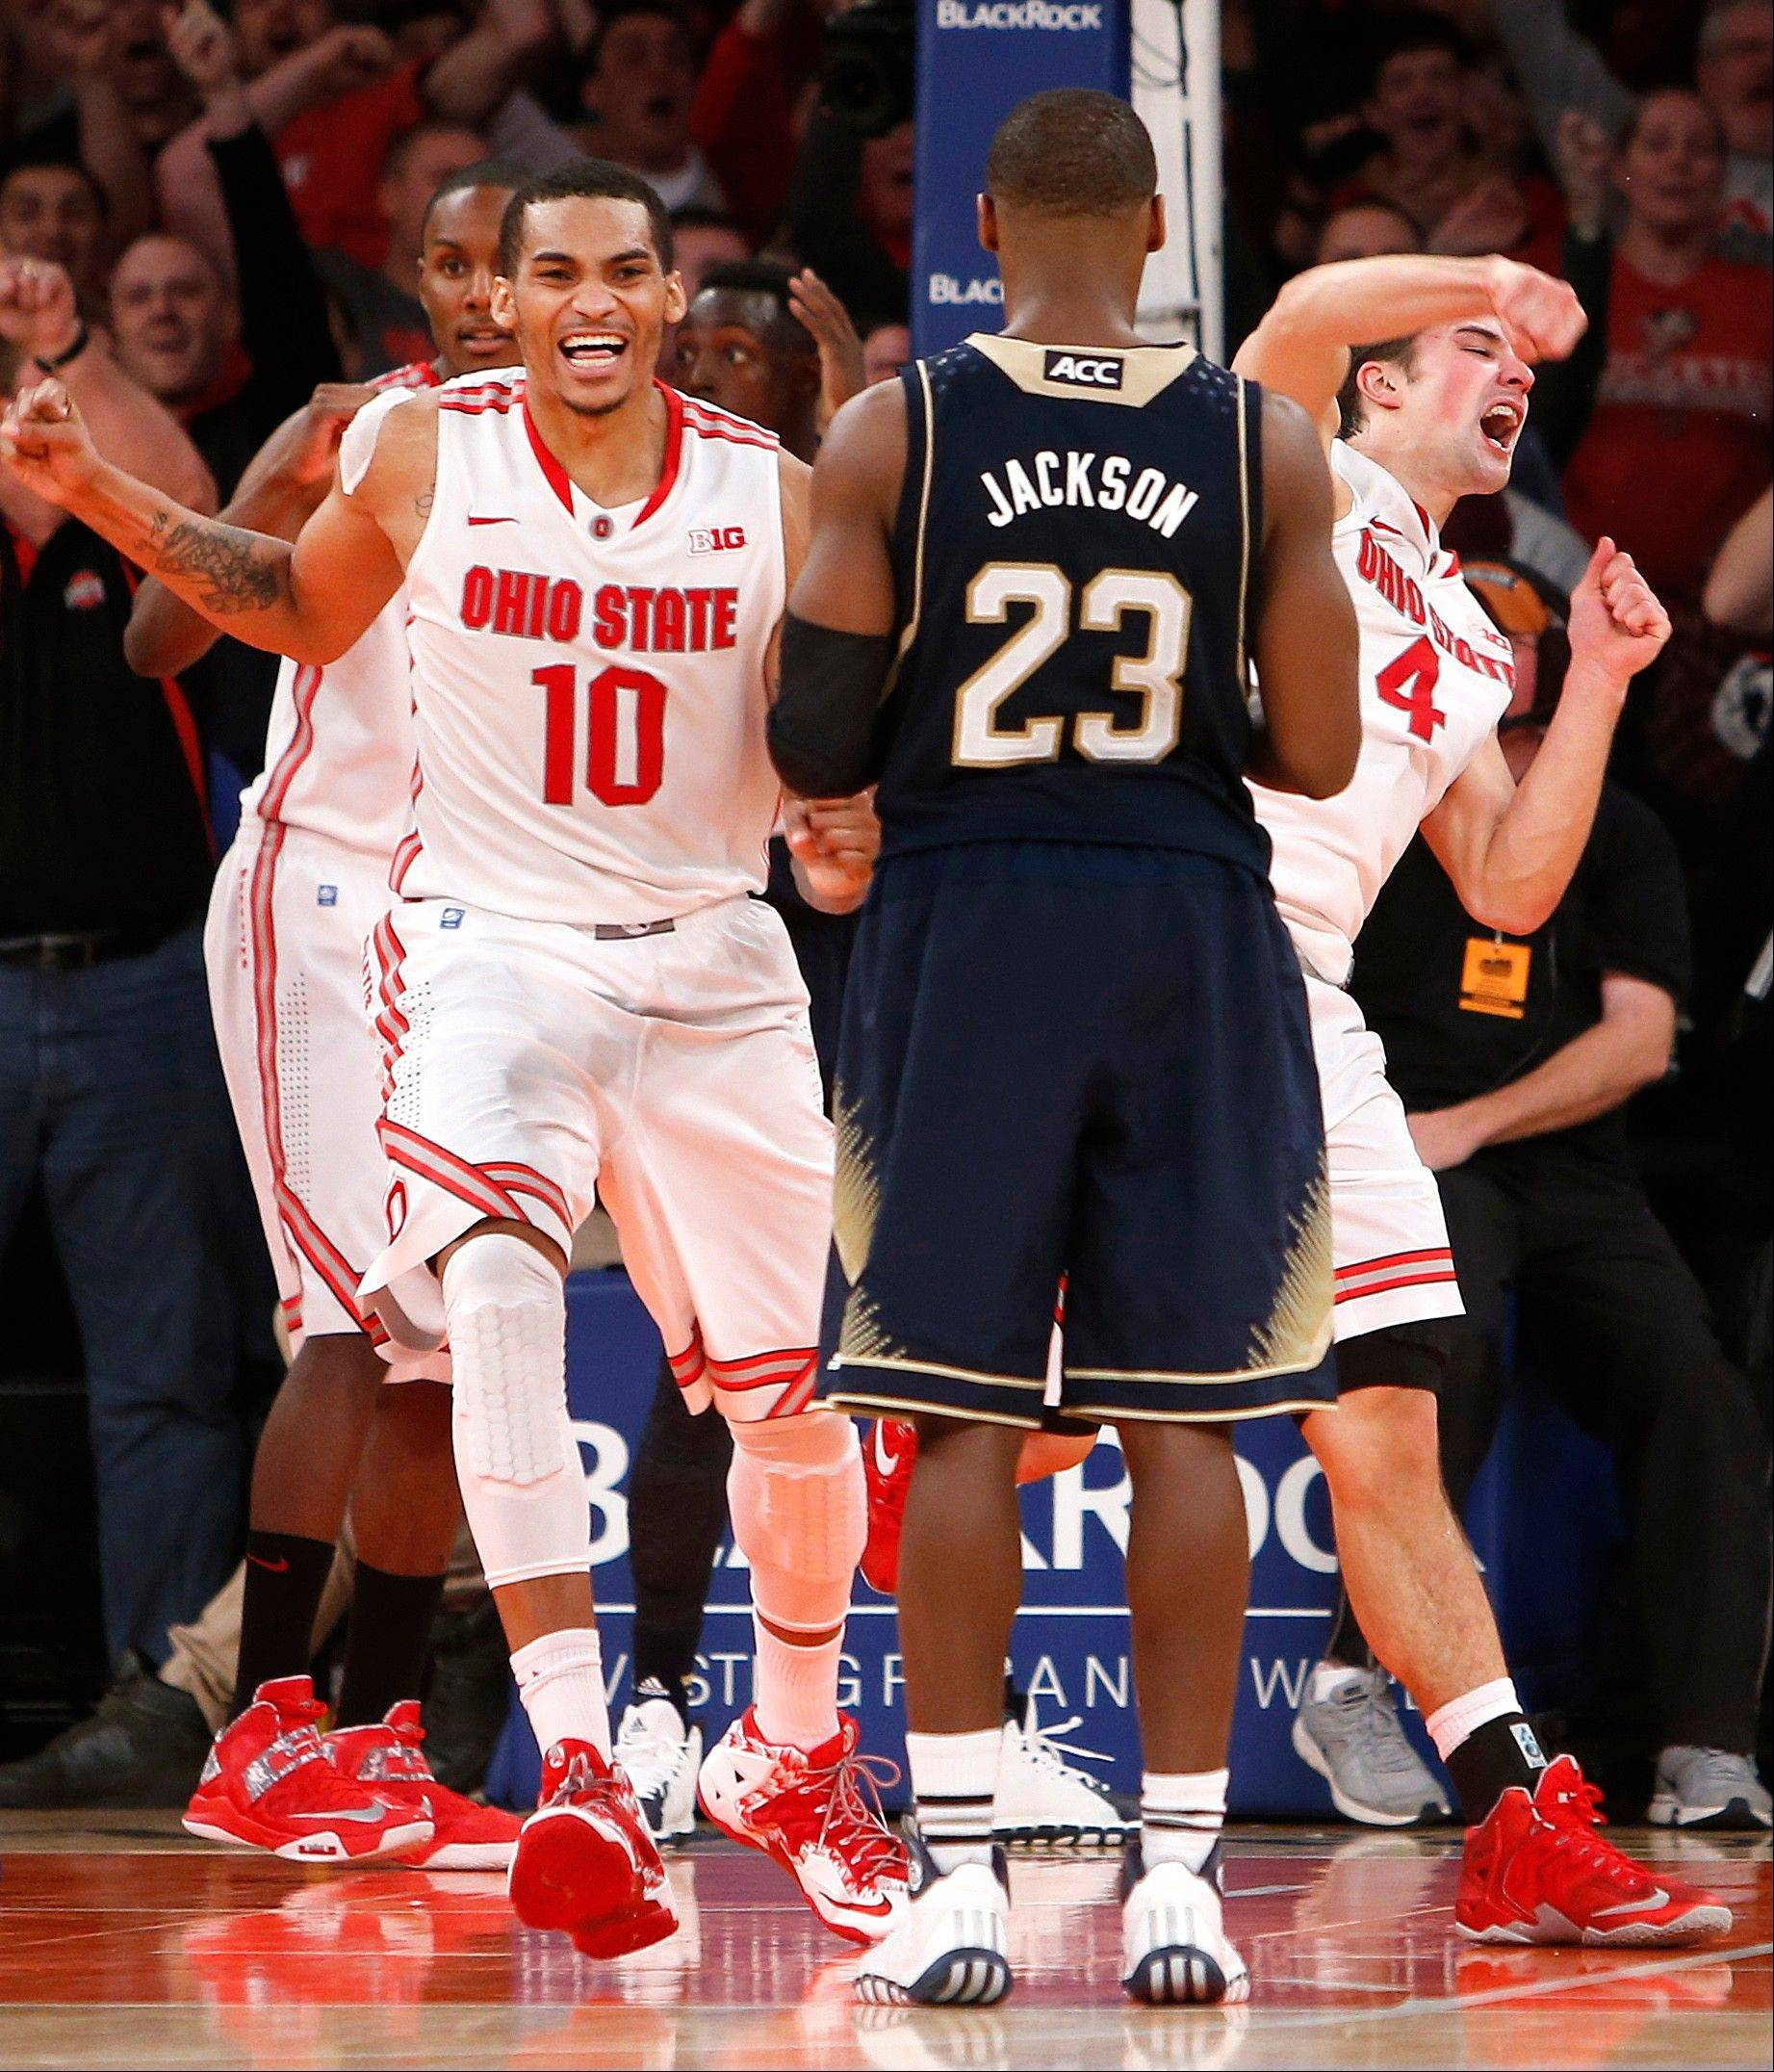 Ohio State's LaQuinton Ross and Aaron Craft celebrate after a turnover by Notre Dame in the final seconds of their game Saturday in New York. Ohio State won 64-61.